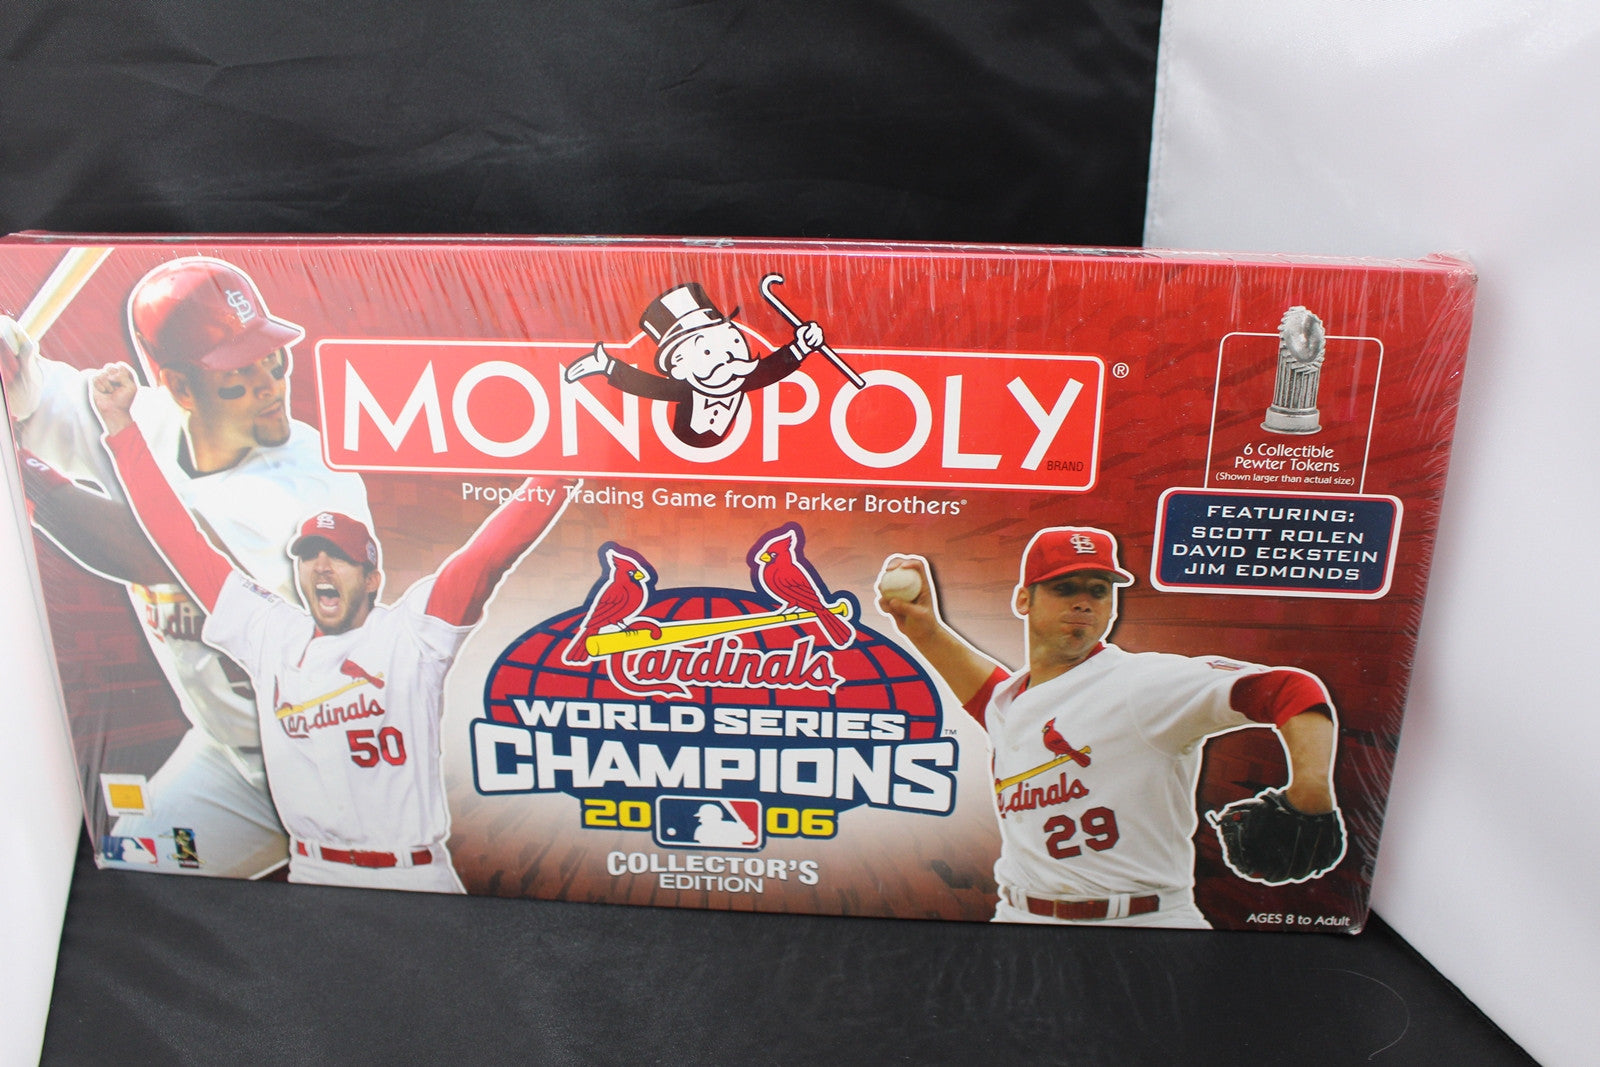 2006 Collectors Edition St Louis Cardinals World Series Champions Monopoly New Sealed